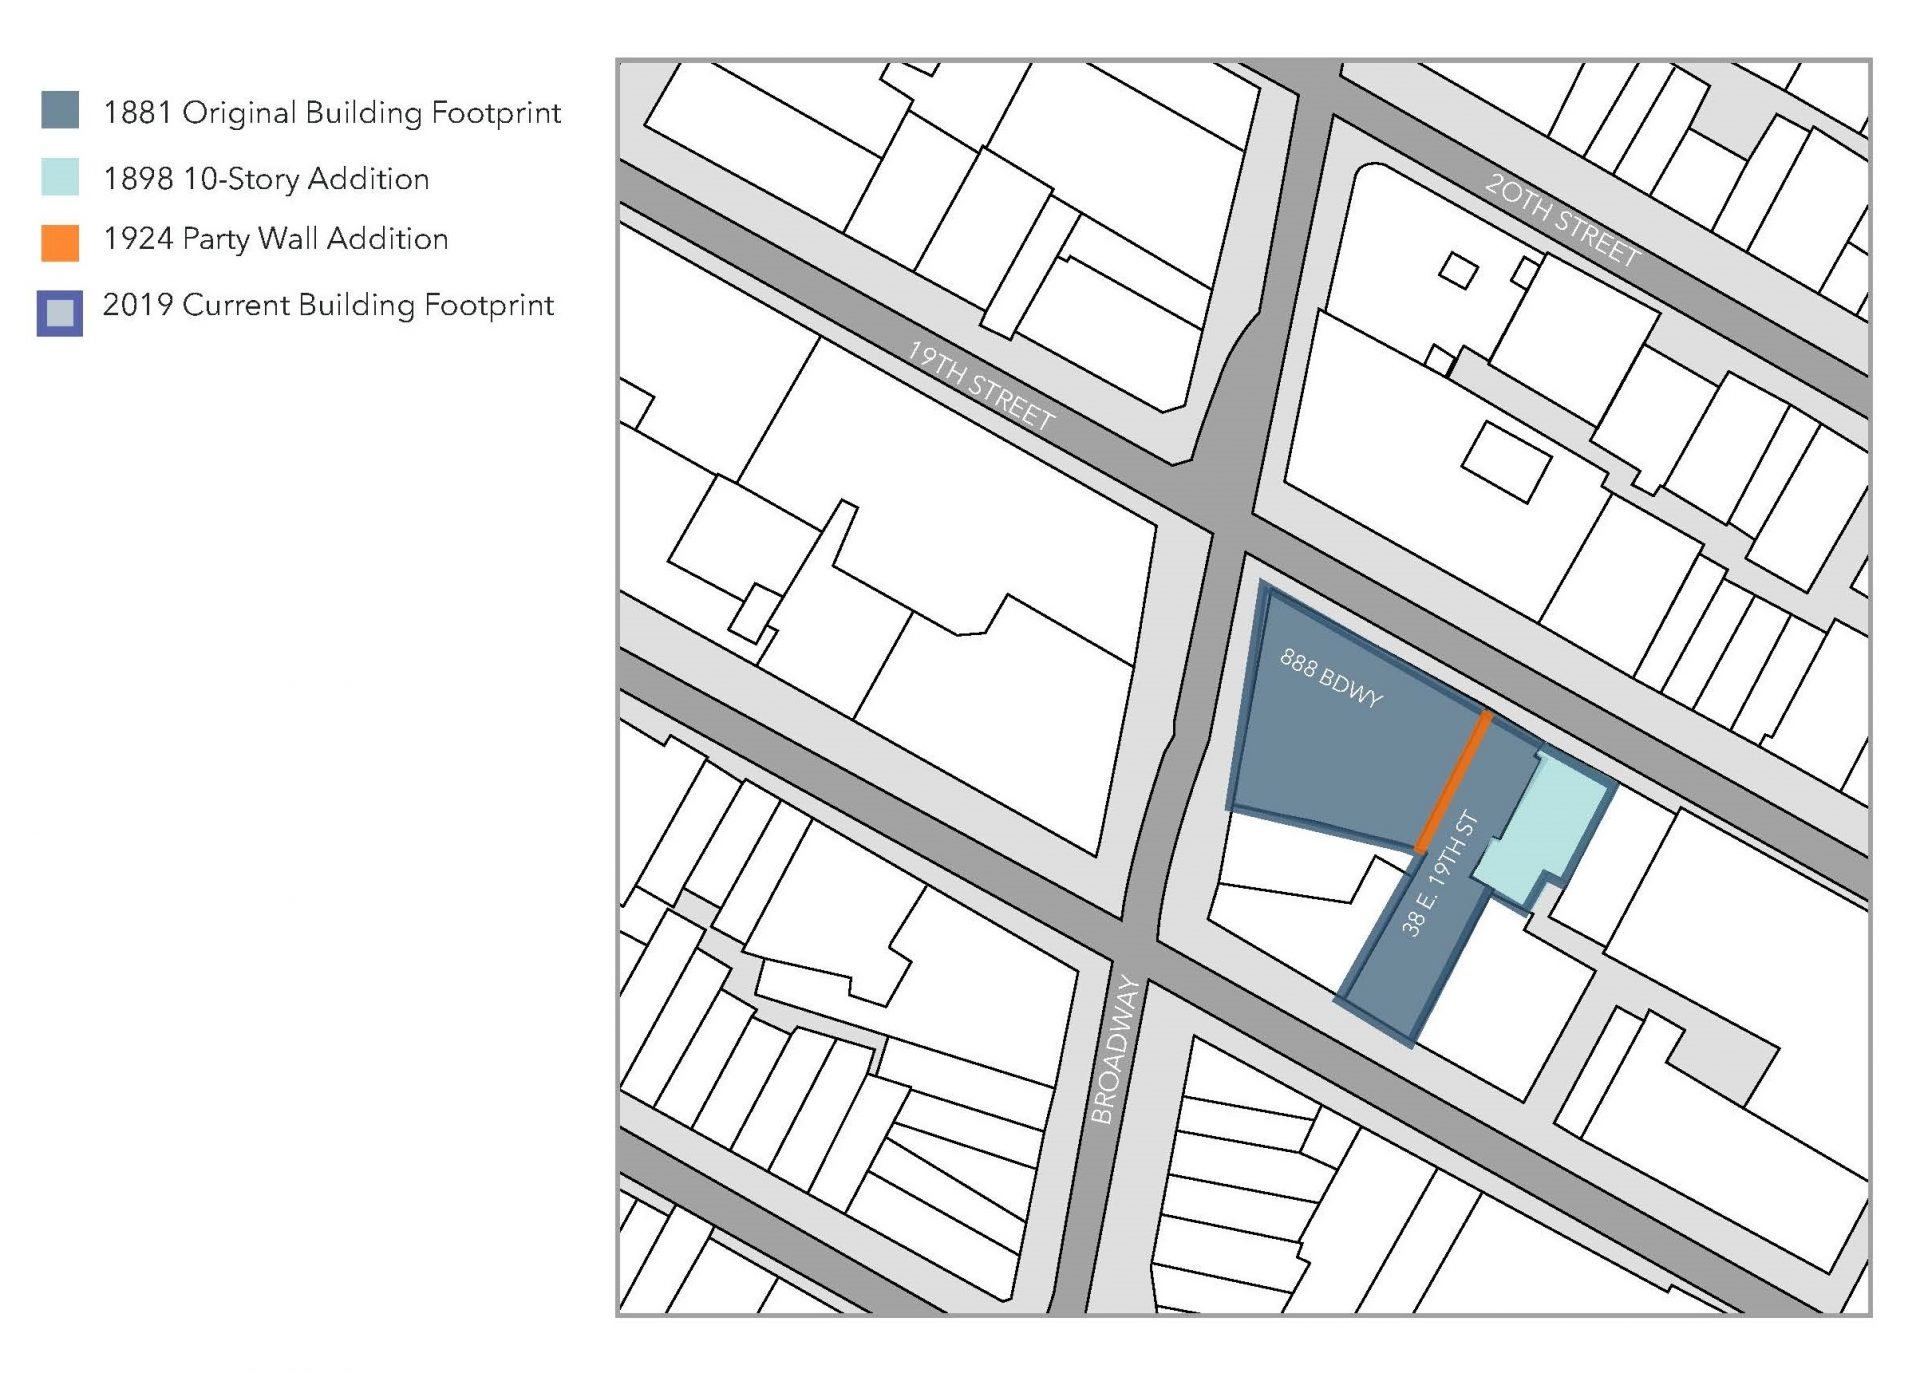 Site plan showing the multiple buildings comprising of 888 Broadway and its resulting floorplan